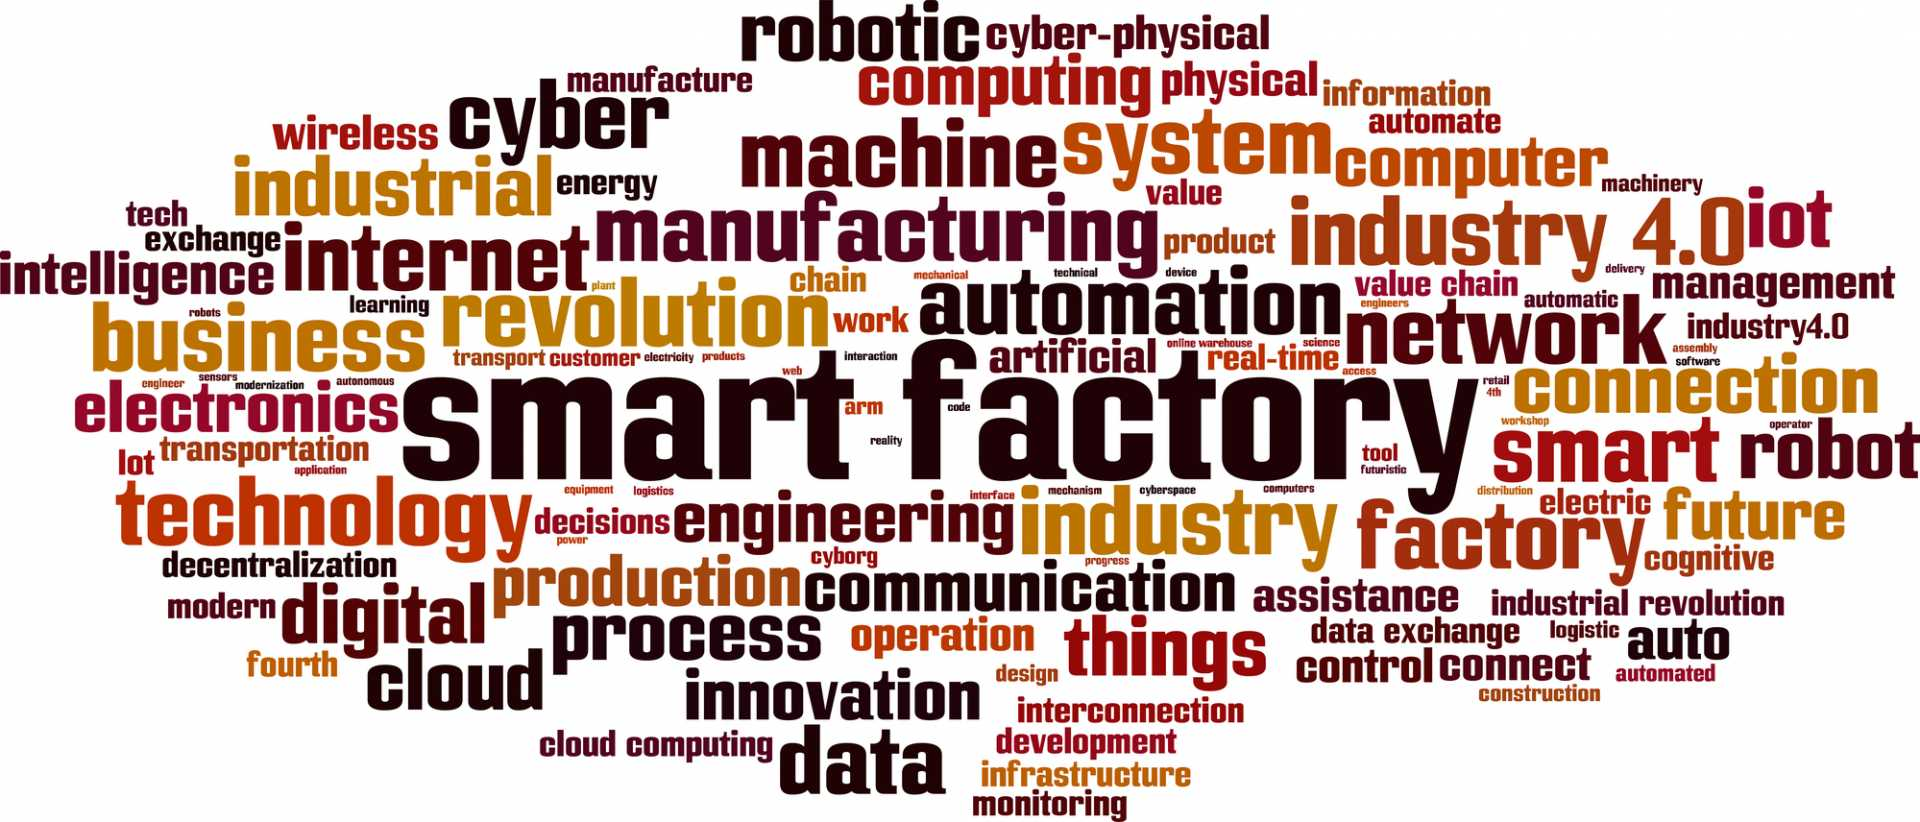 Smart factory word cloud concept drones to digital twins, augmented reality to blockchain, edge to the cloud, predictive maintenance to machine learning digital transformation - image courtesy of Depositphotos.